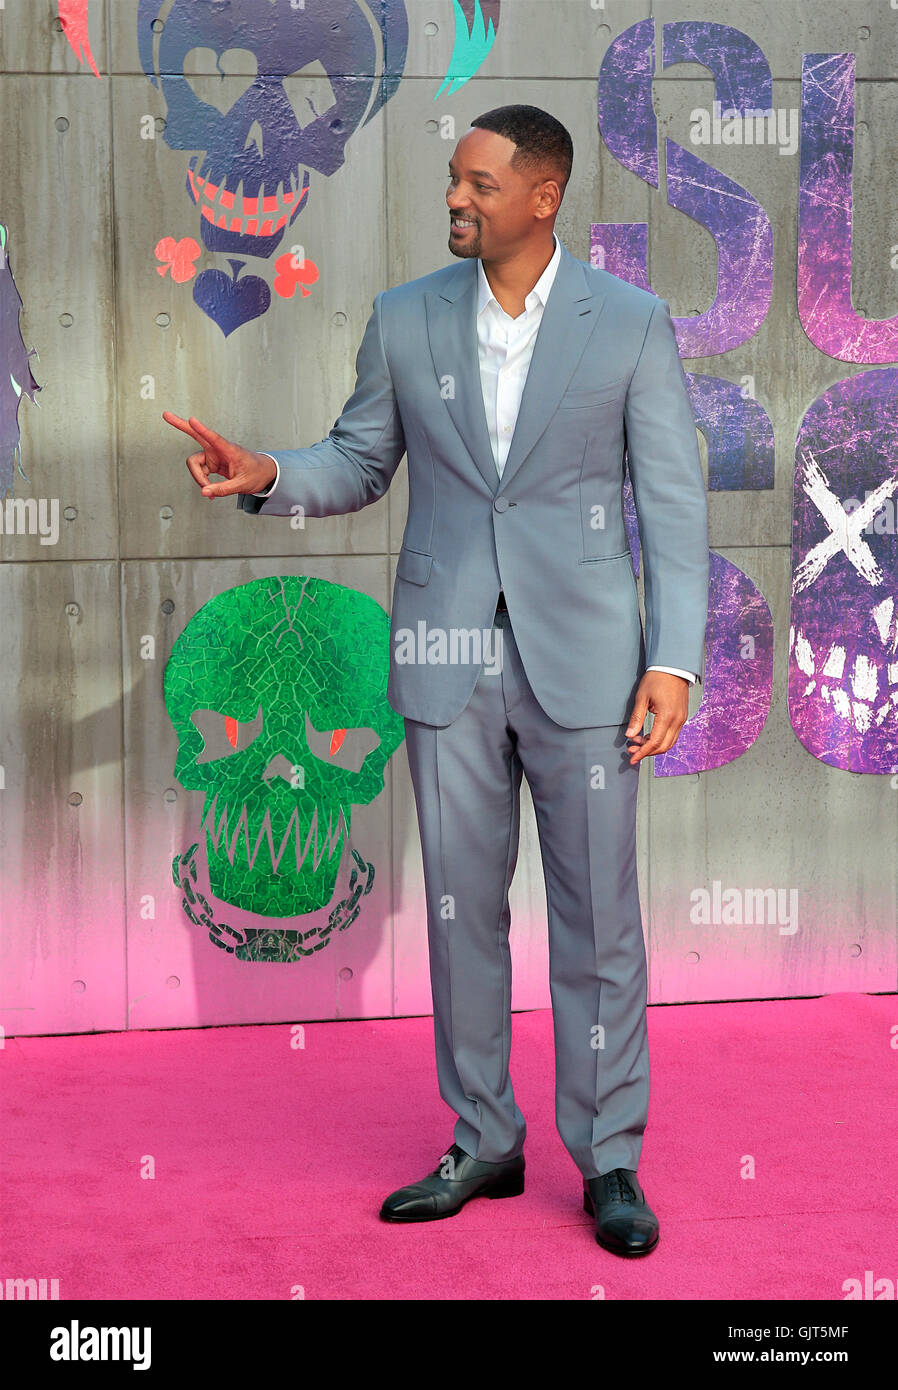 Will Smith attends the Suicide Squad film premiere, London, UK - 03 Aug 2016 - Stock Image